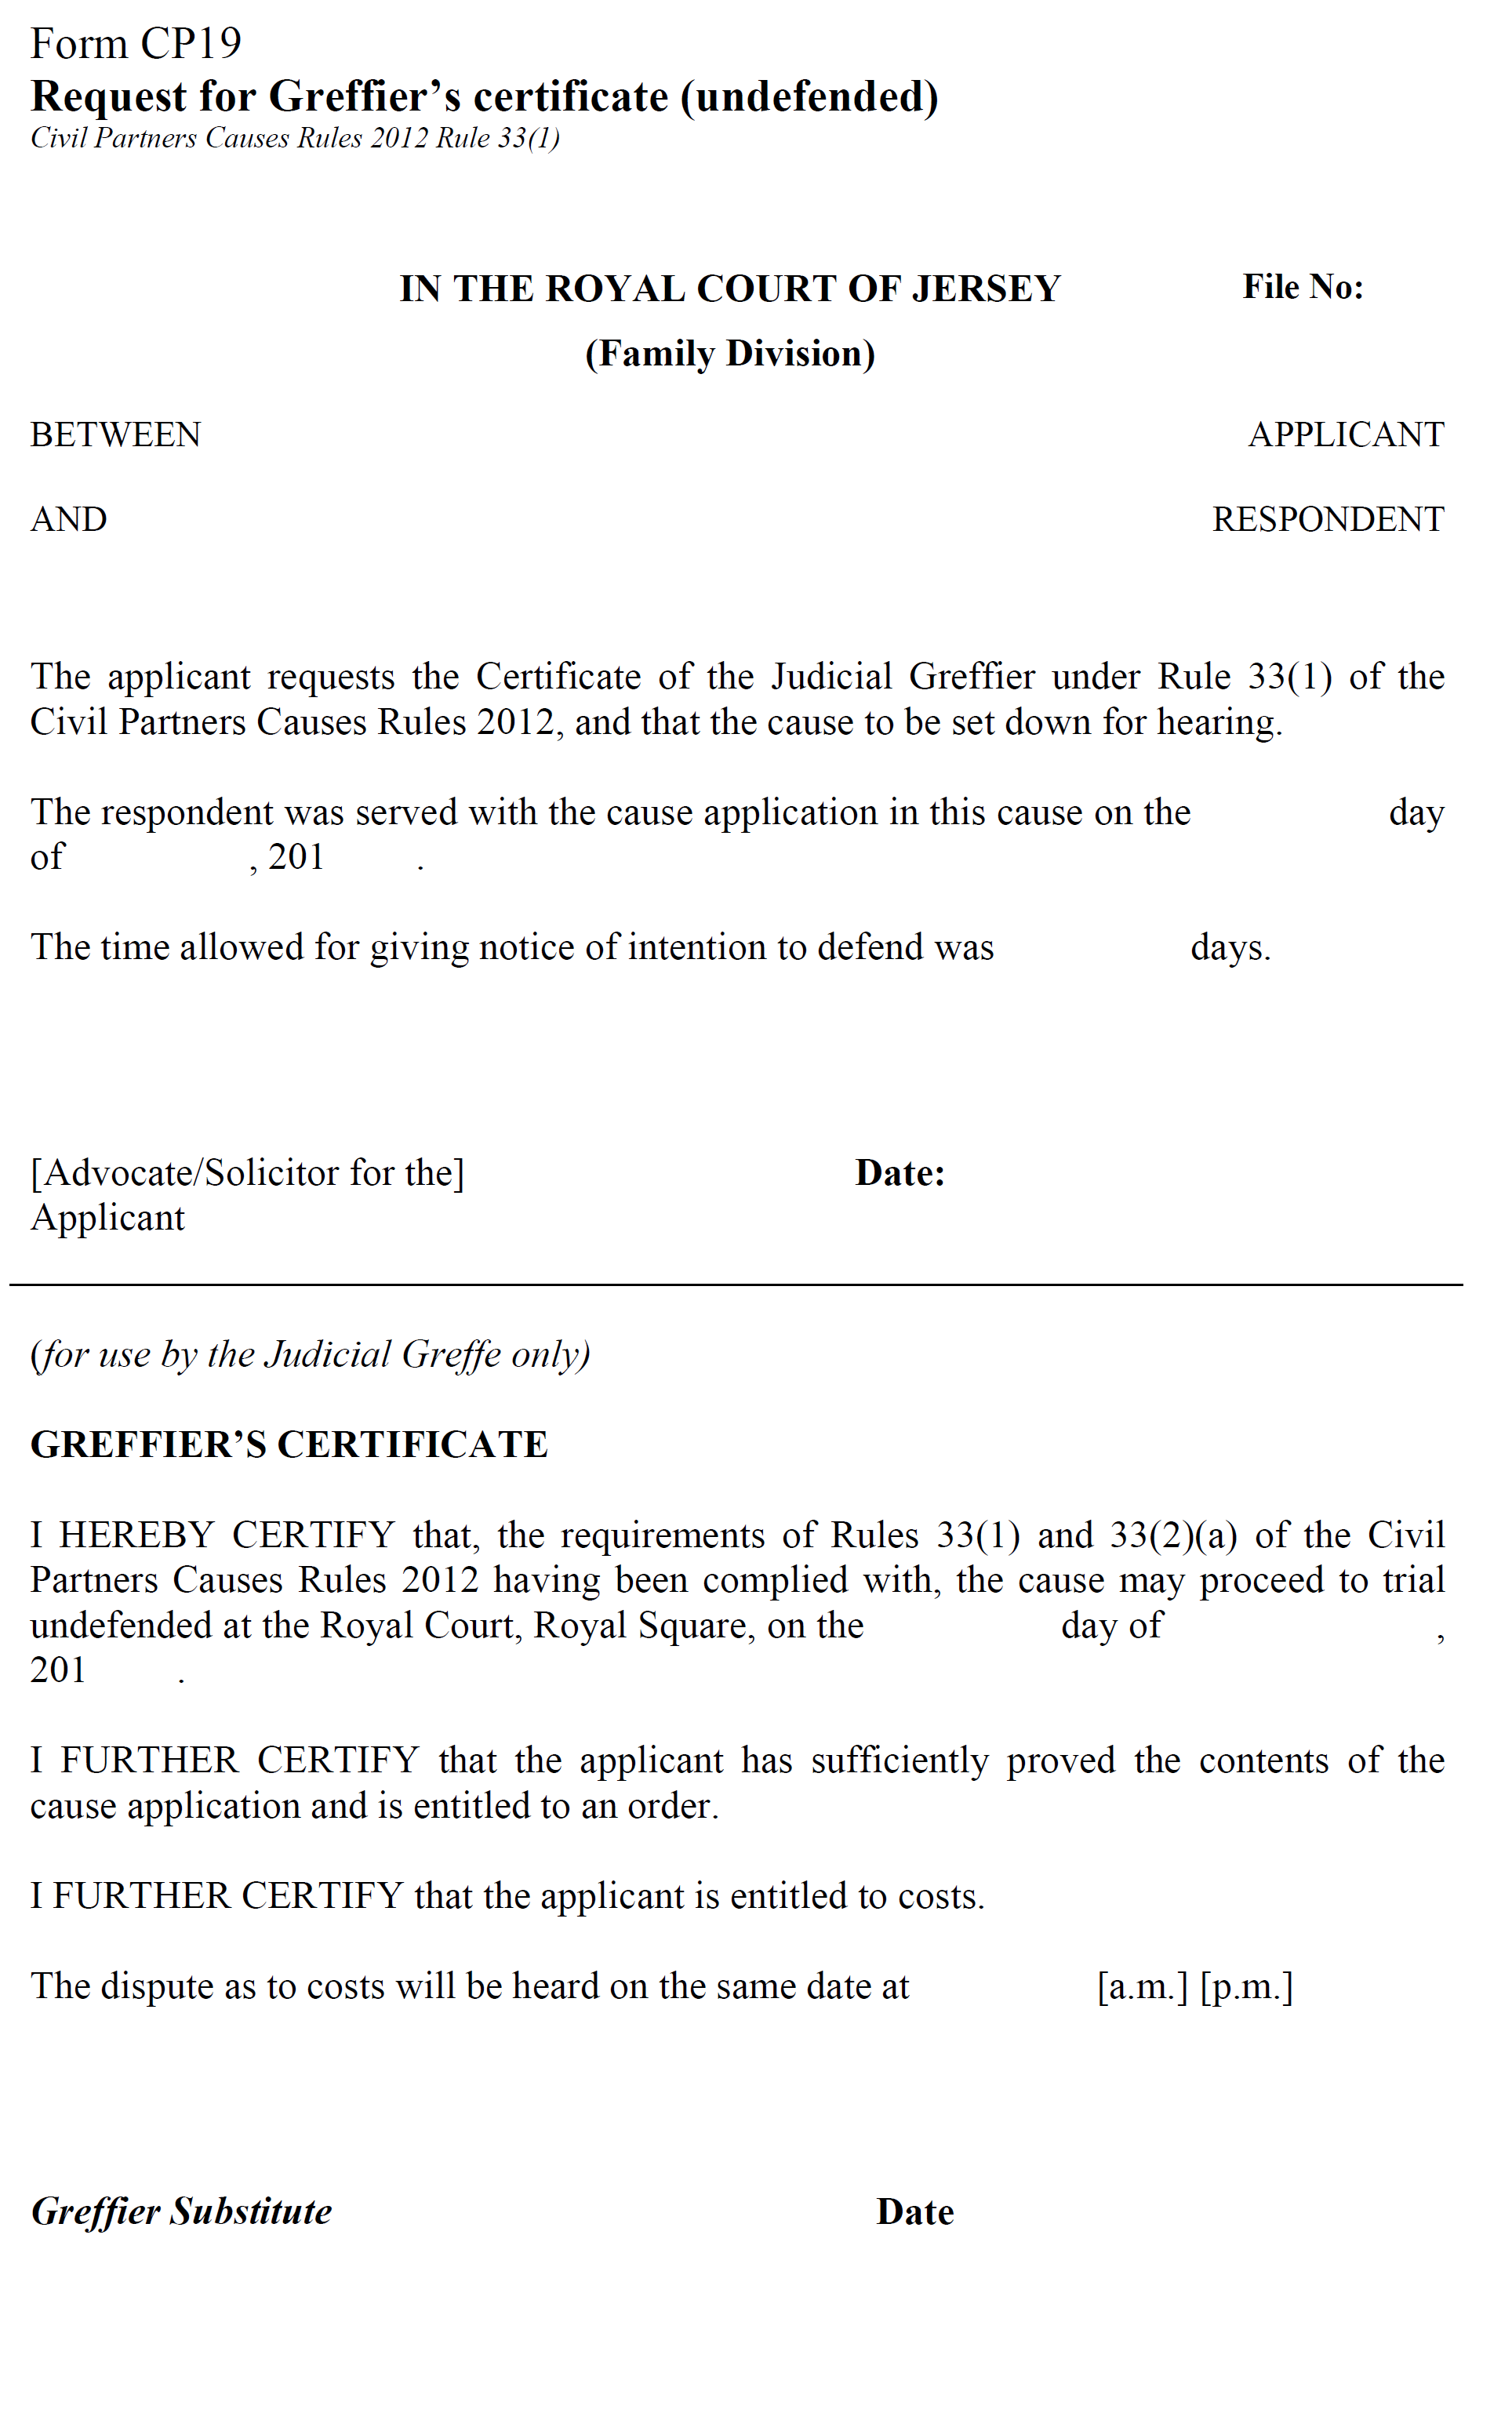 Form CP19 - Request for Greffier's certificate (undefended)